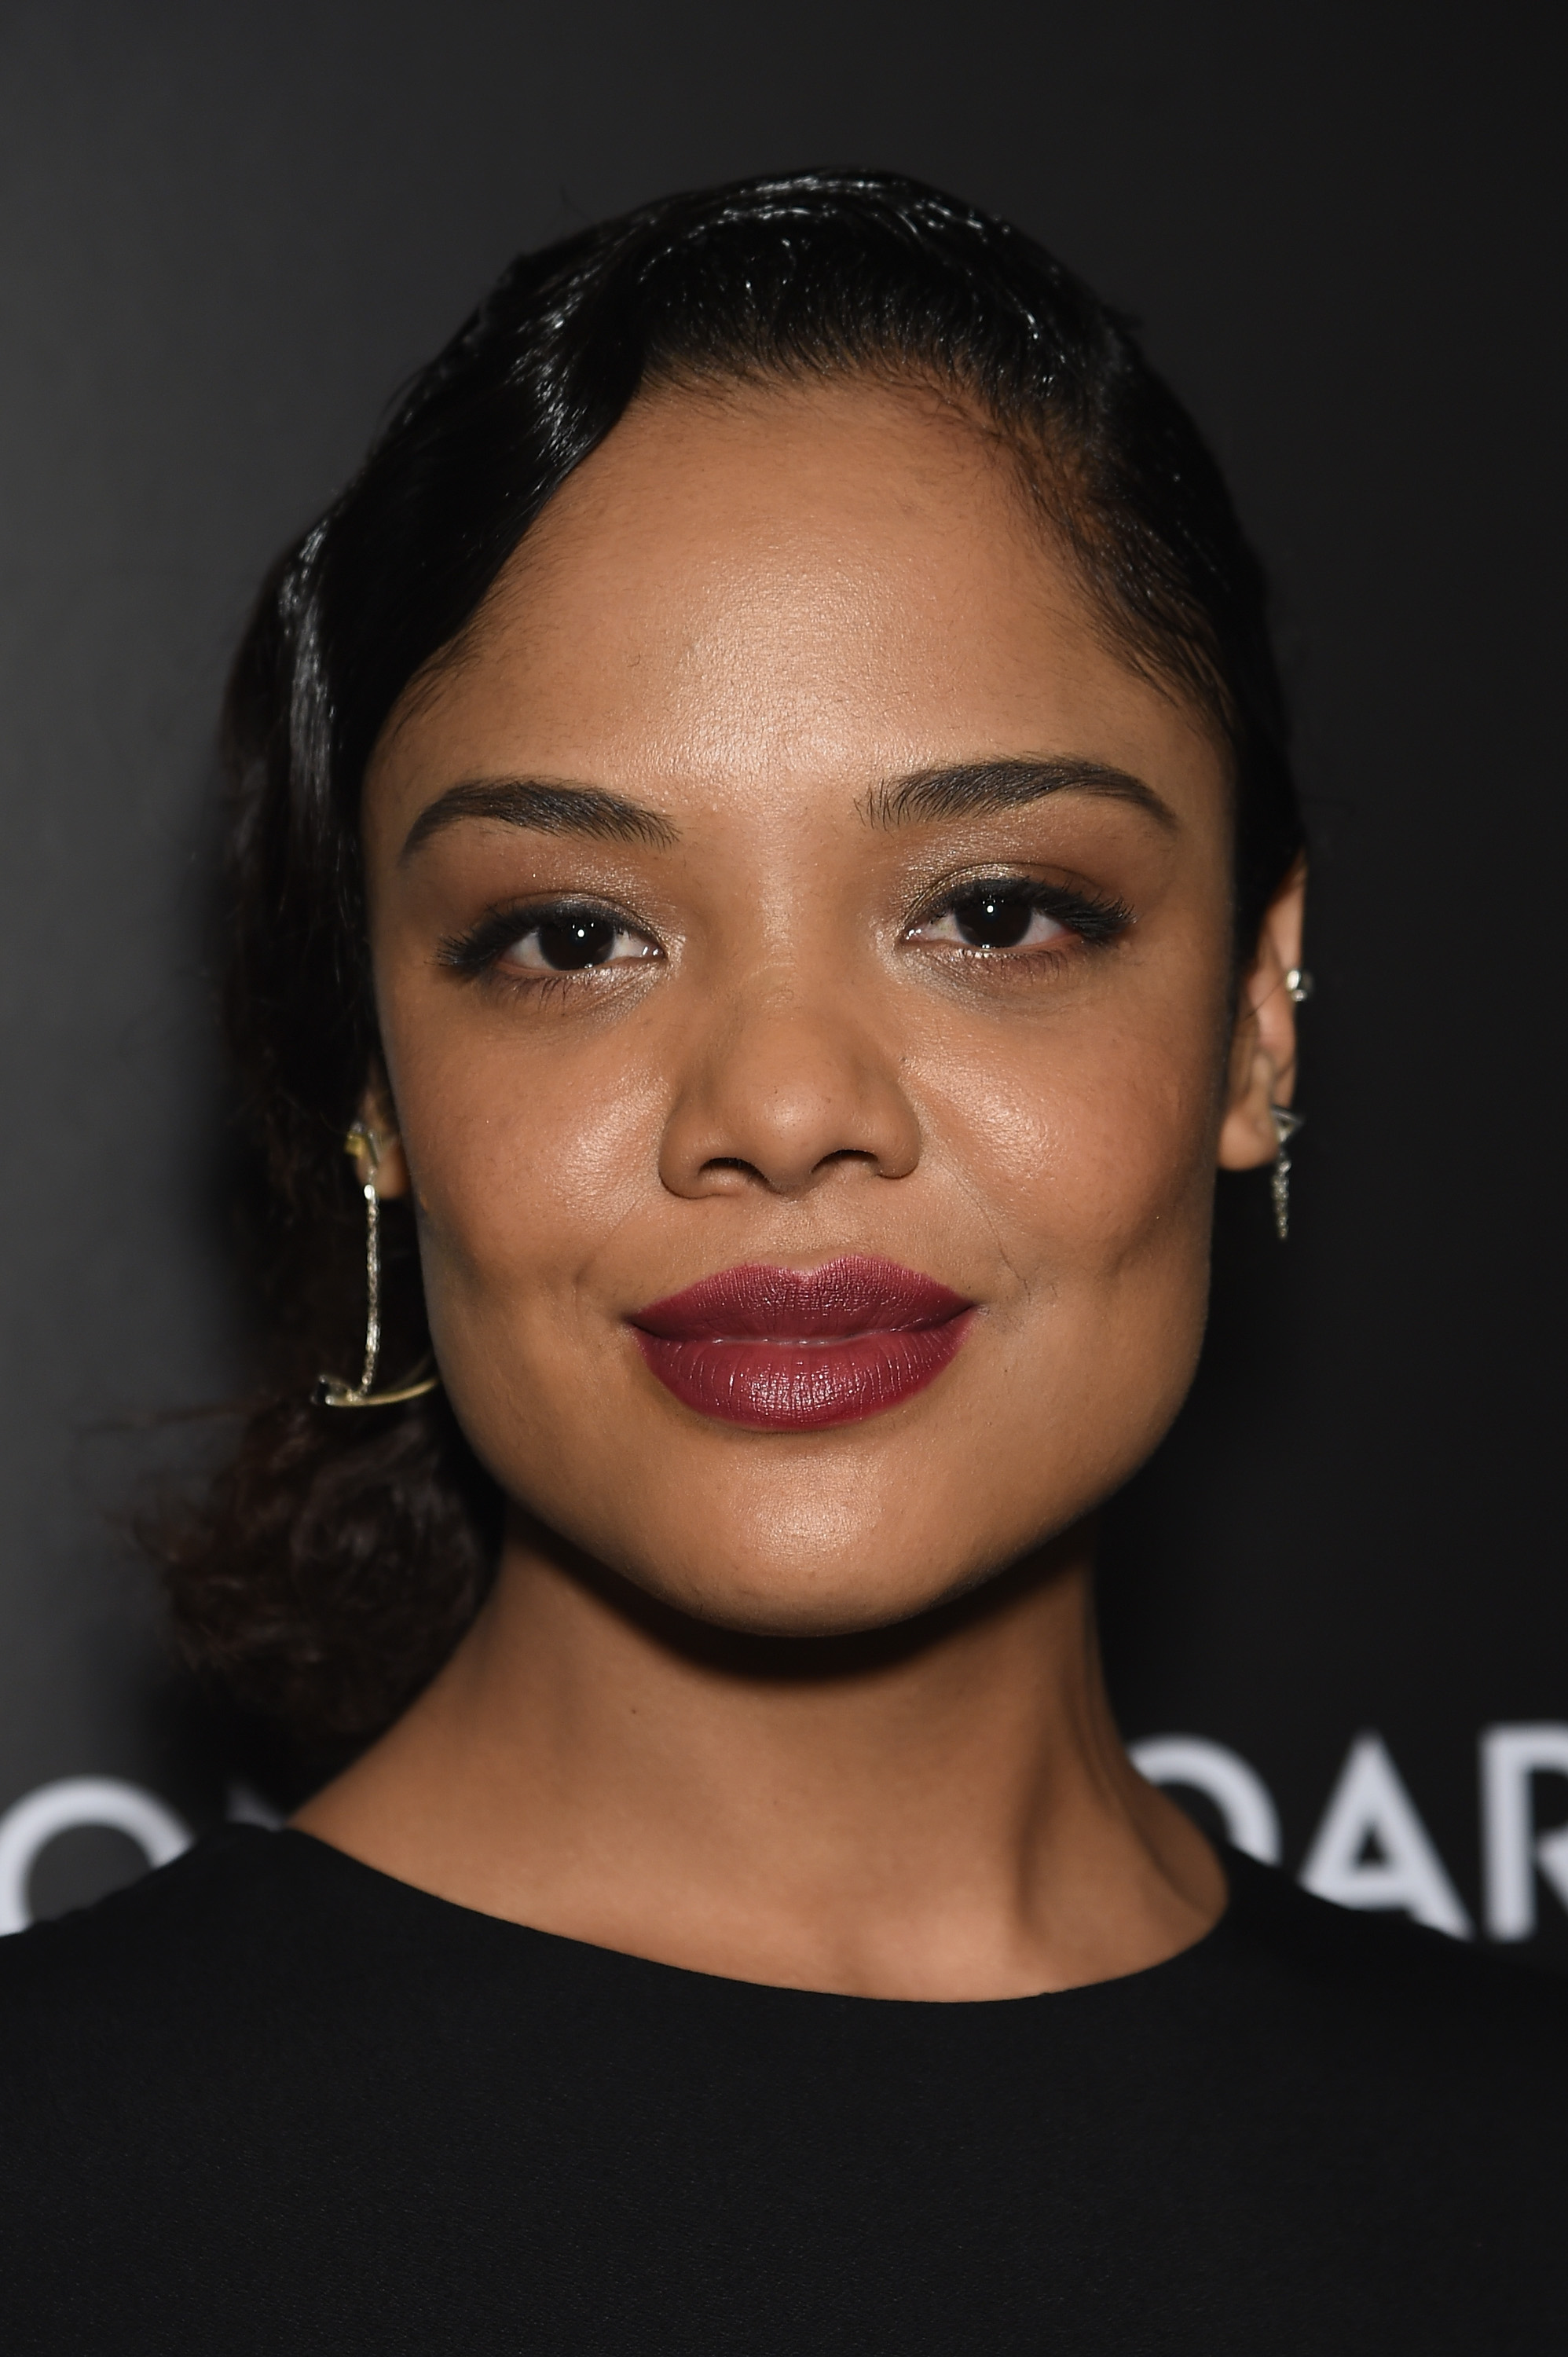 Tessa Thompson 2016 : Tessa Thompson15